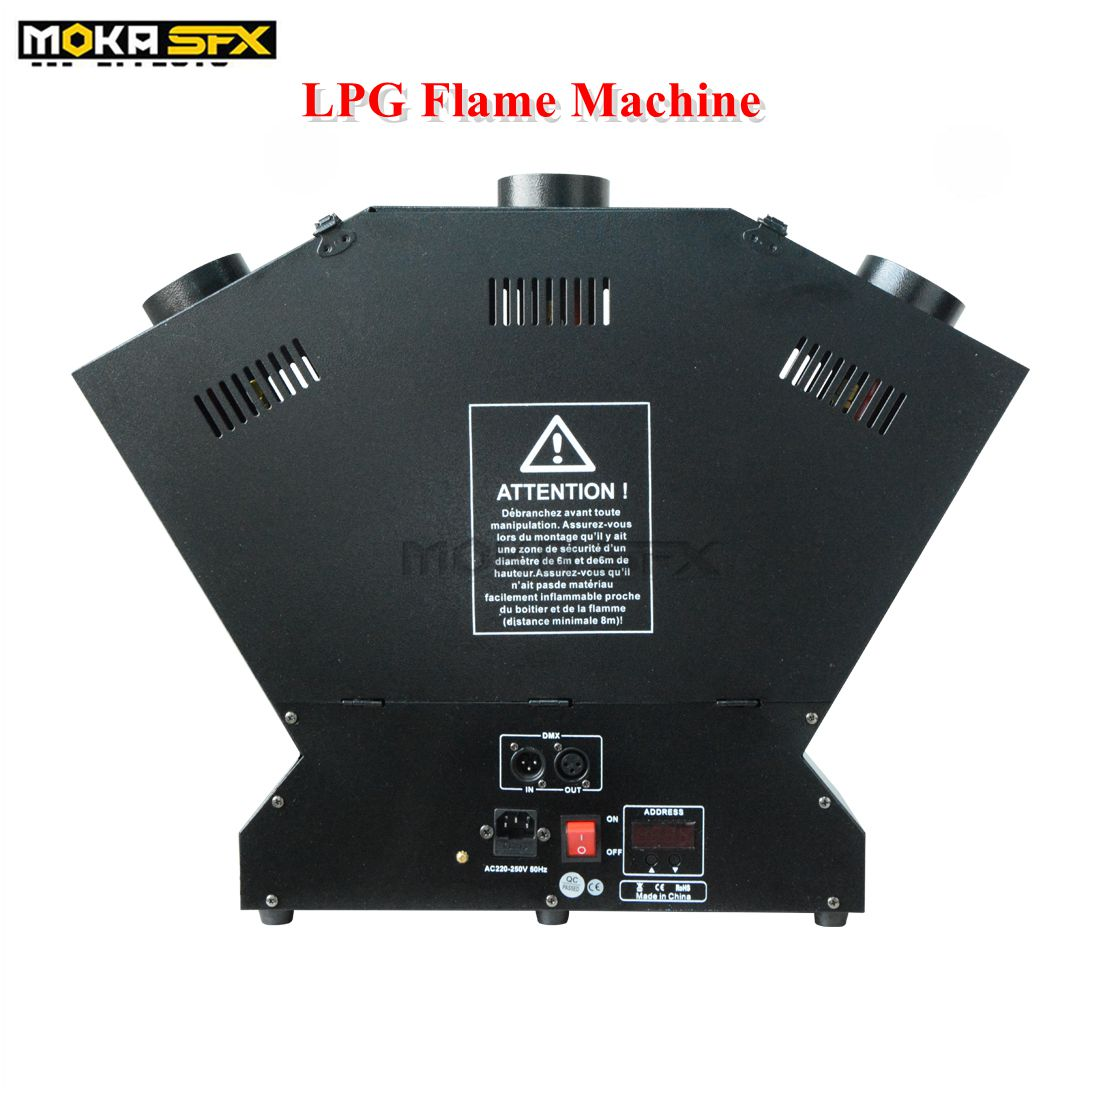 3-head LPG Flame Machine Strong Effect stage flame thrower DMX fire effect machine stage effects flame machine